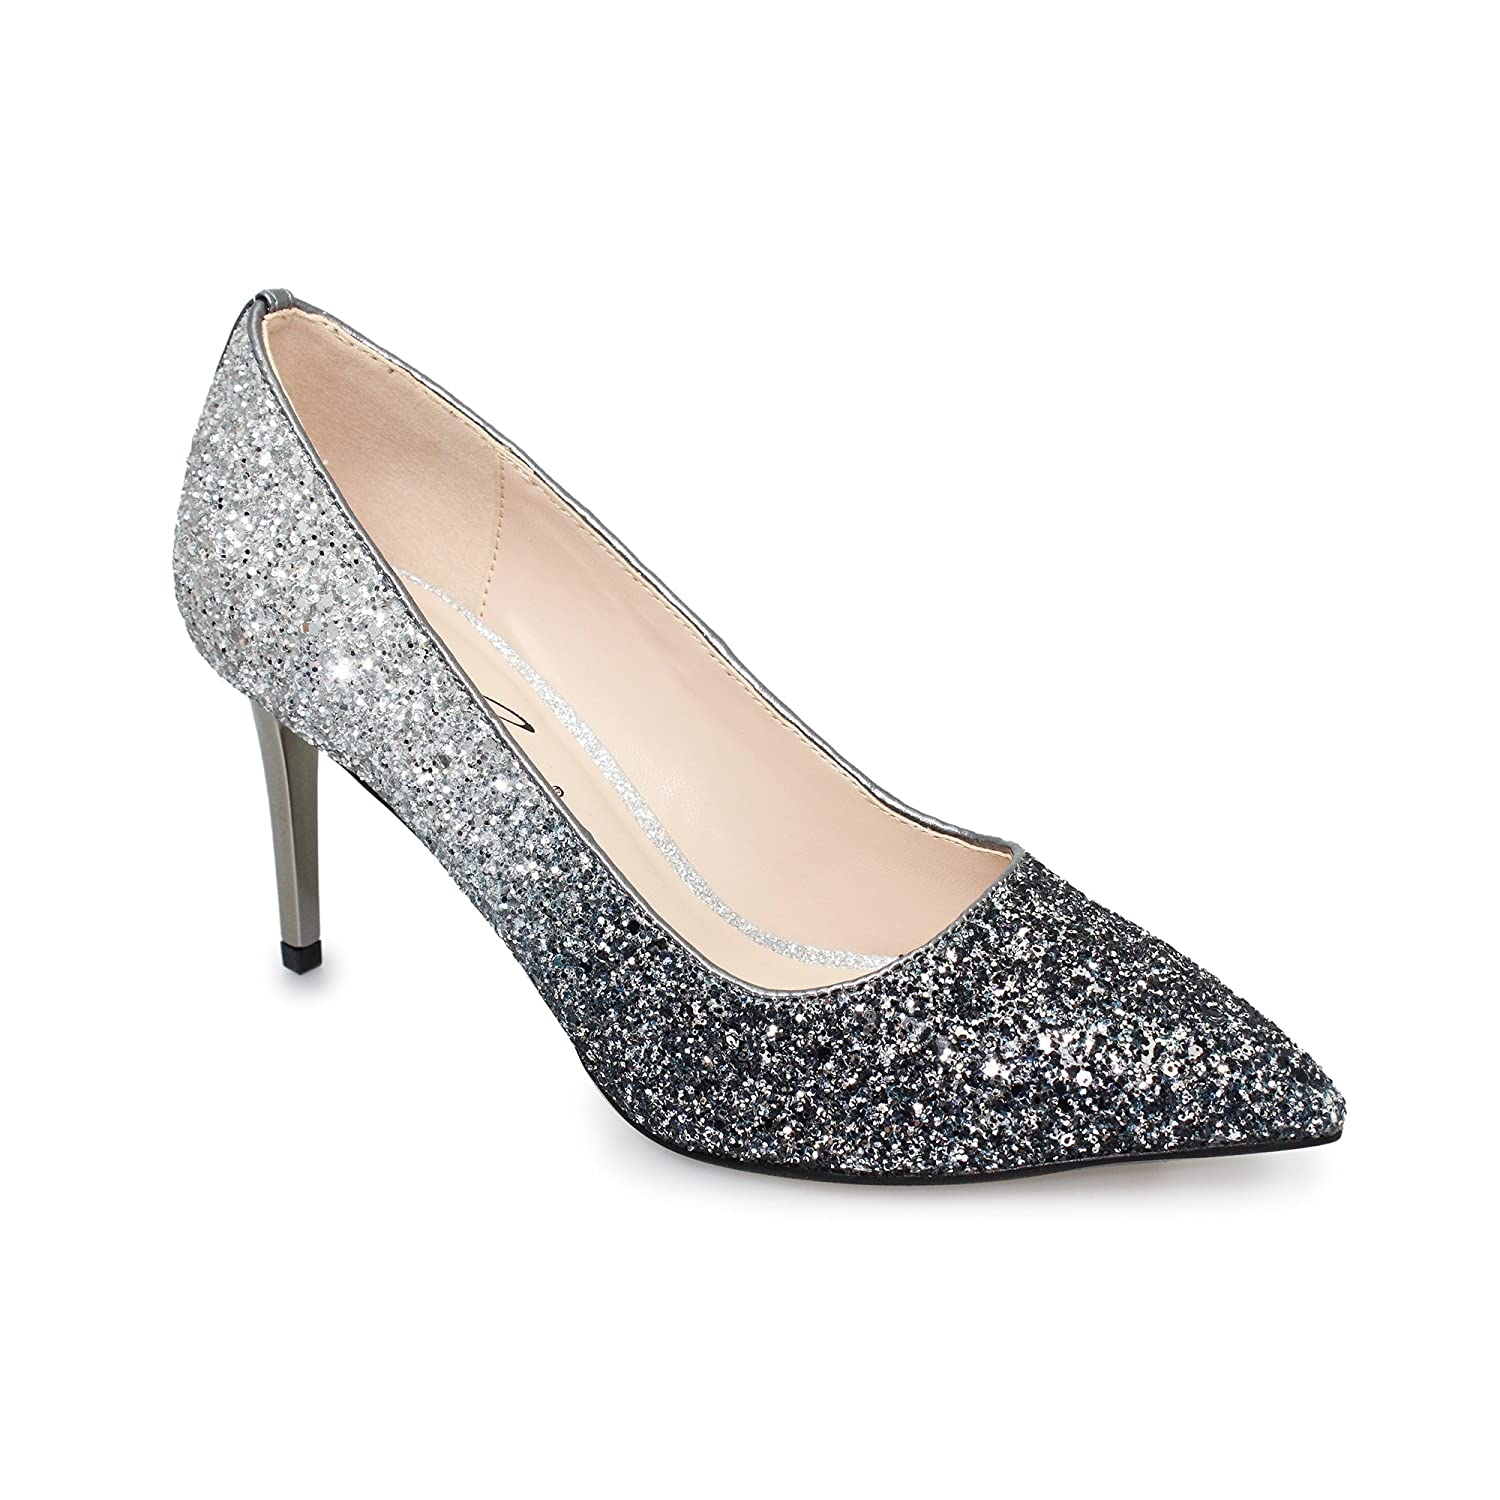 b5525e283967 Lunar Women s Dusk  Two Tone Glitter Heeled Court Shoe in Pink Gold Or  Pewter Grey  Amazon.co.uk  Shoes   Bags